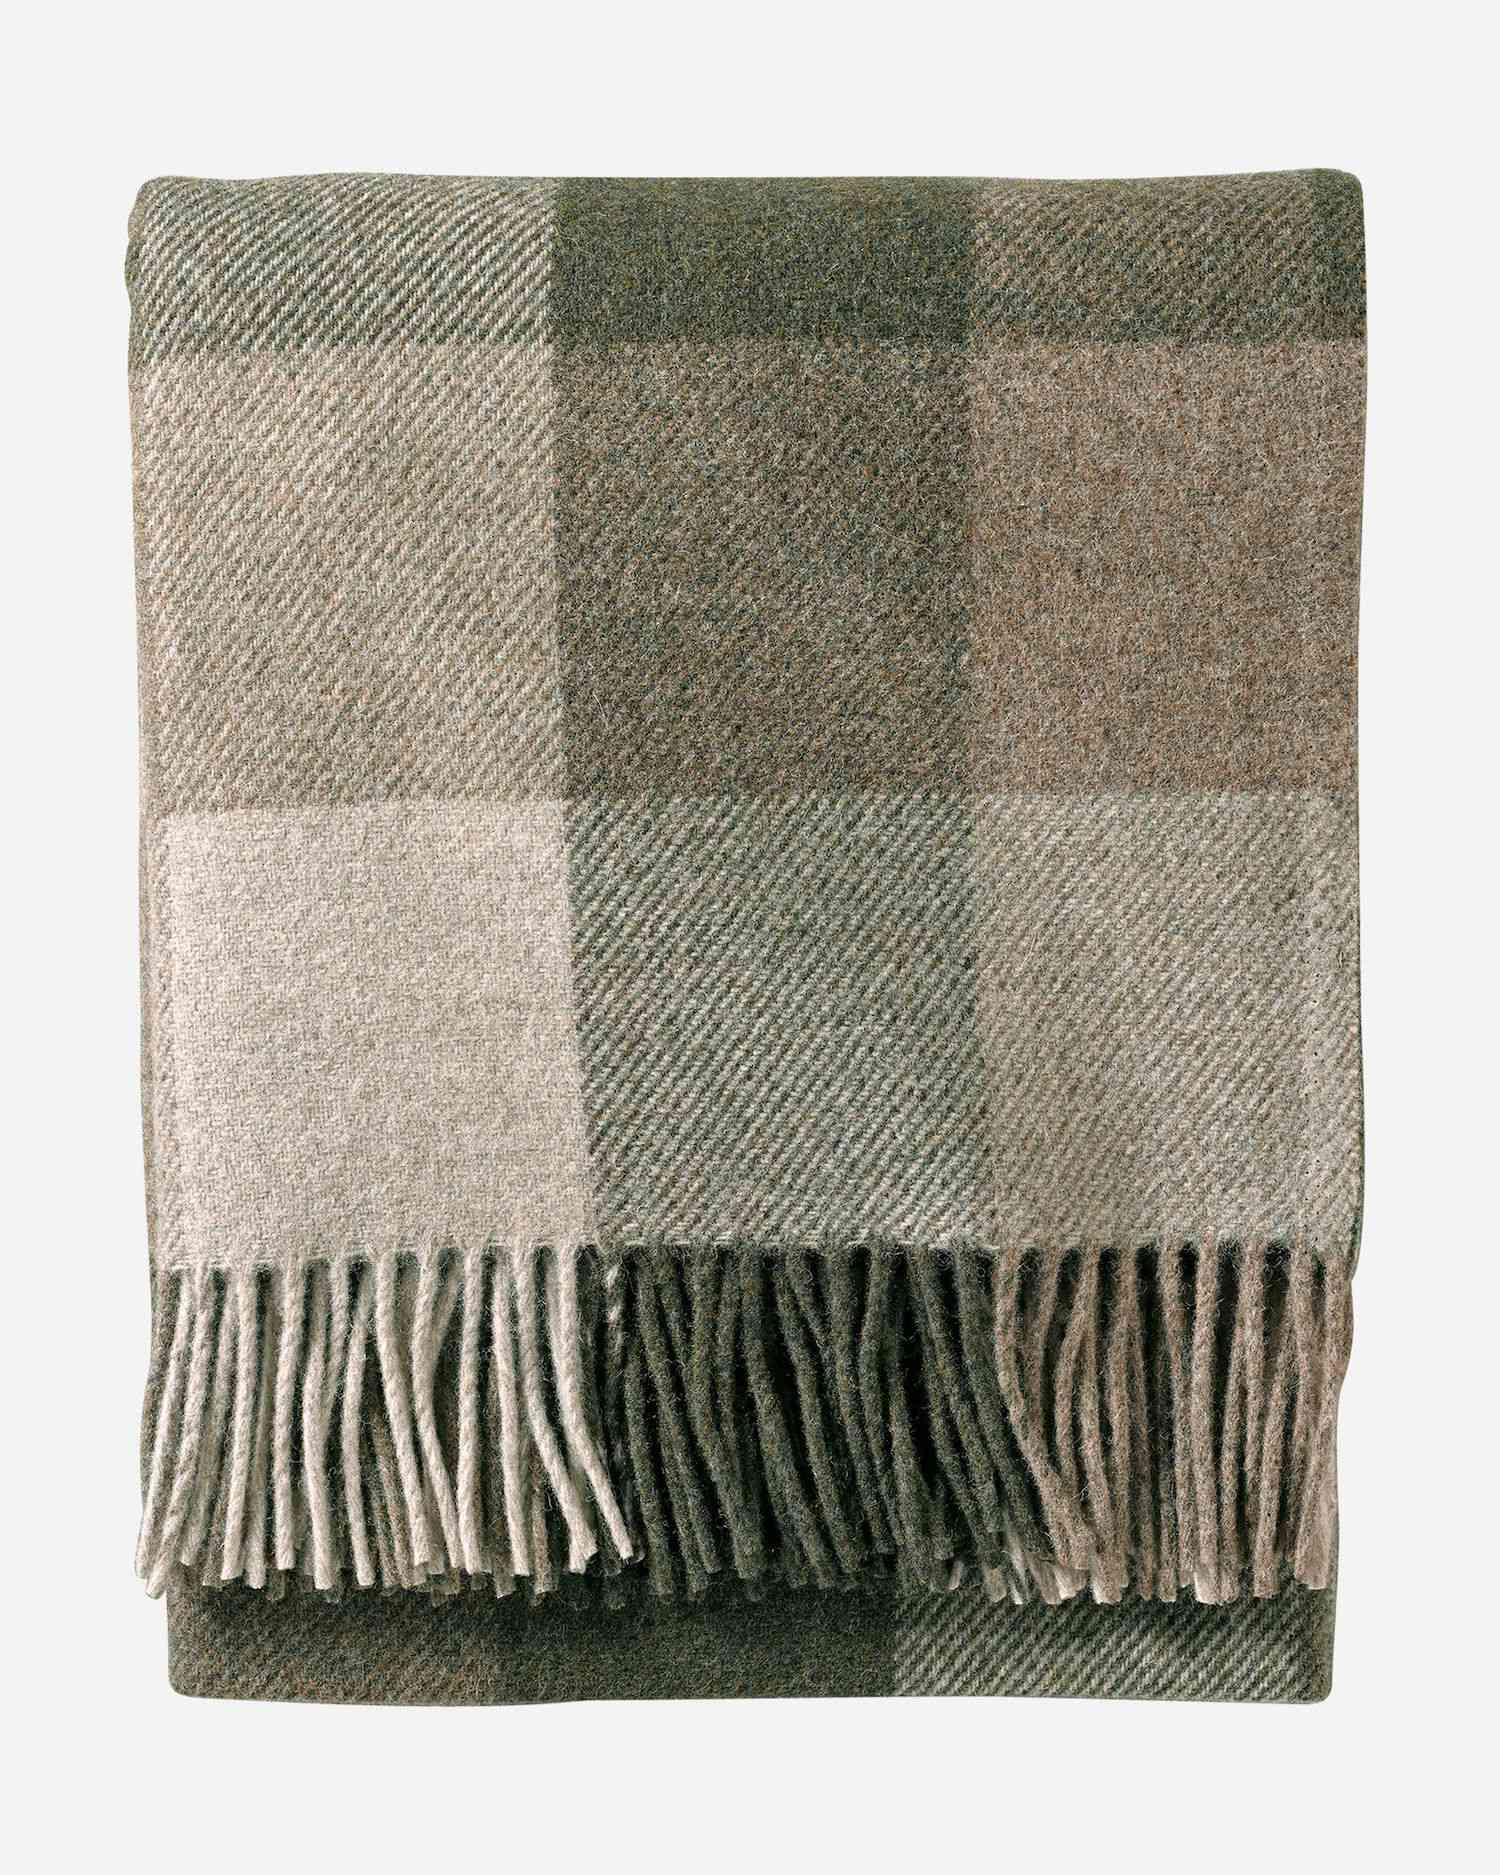 An olive green and beige plaid blanket